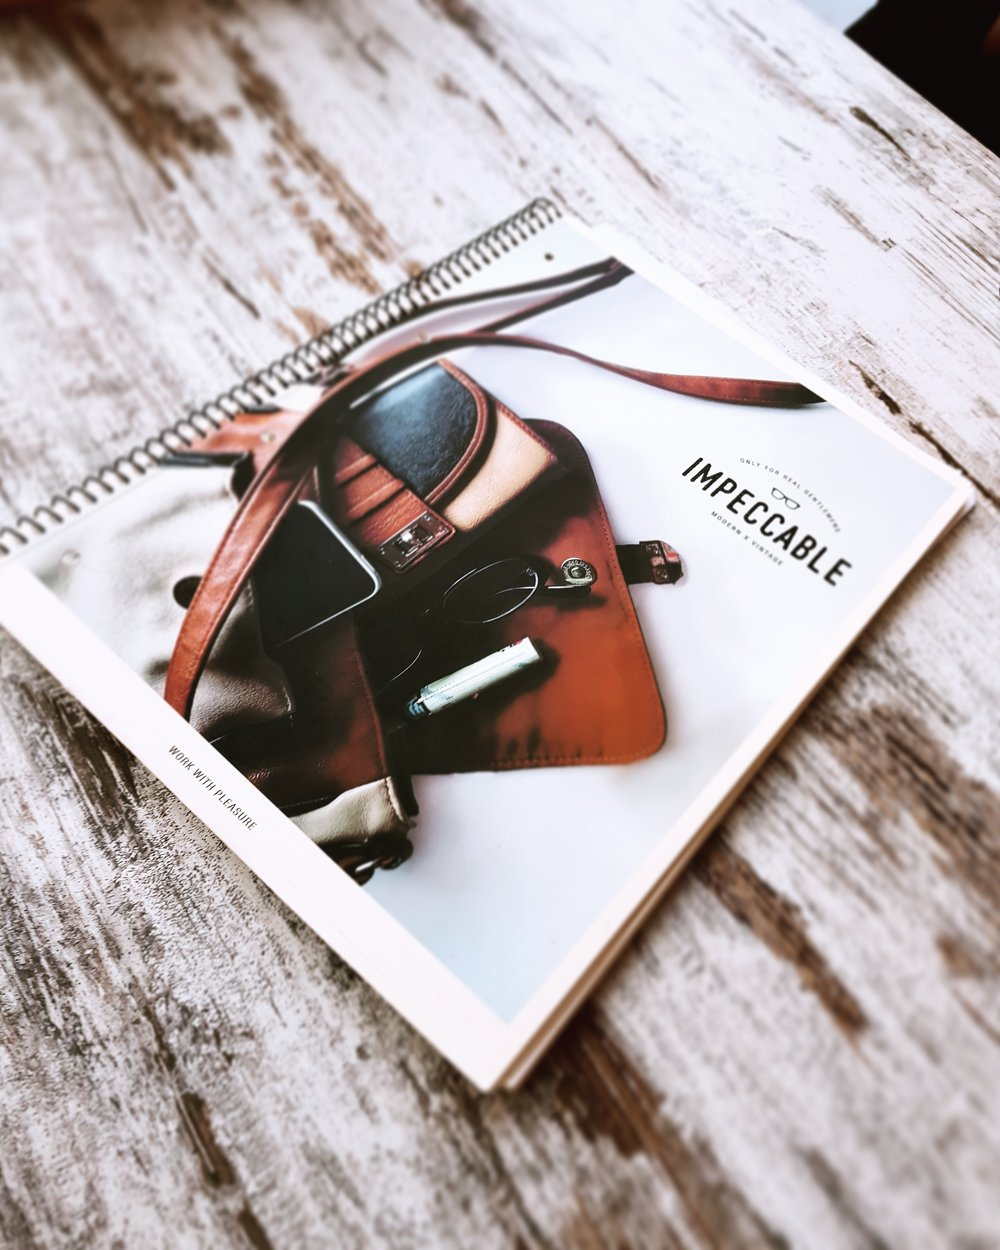 Catalogue, brochure or excessive print - All the information you need will be condensed and provided as a fold-out in your delegate badge/lanyard.Detailed information will be on the website.